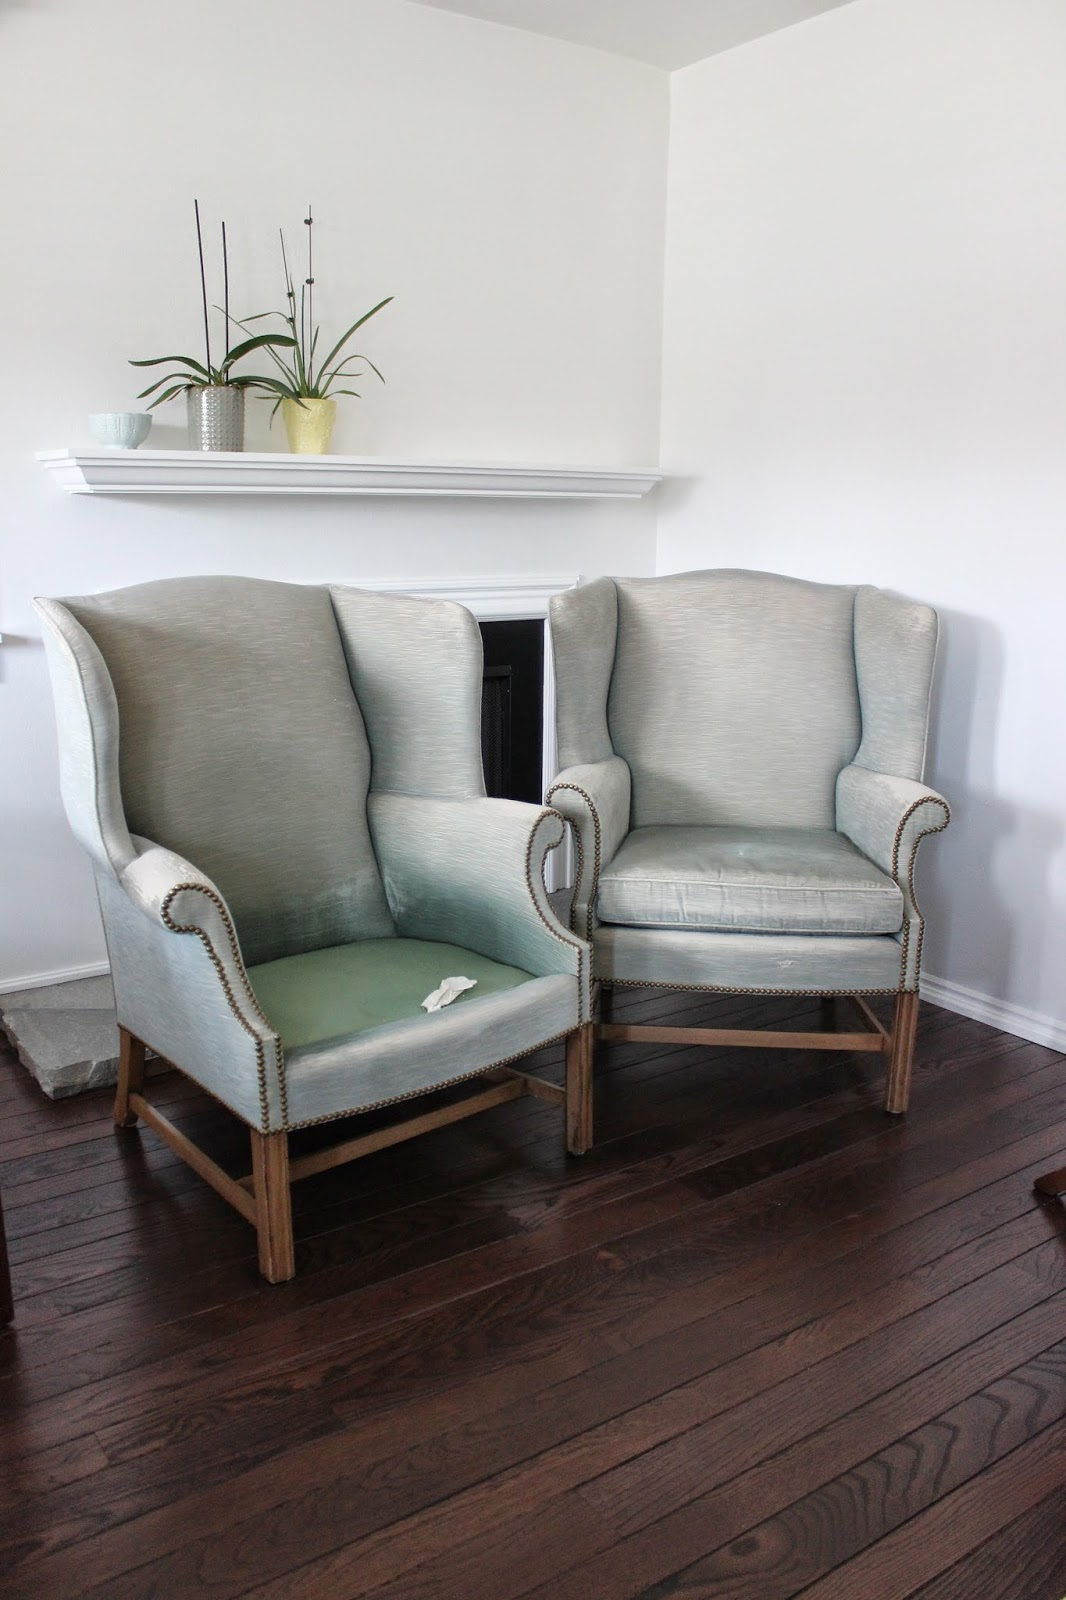 Custom Dining Chair Slipcovers Hanging Garden Chairs Uk By Shelley Heavyweight White Linen